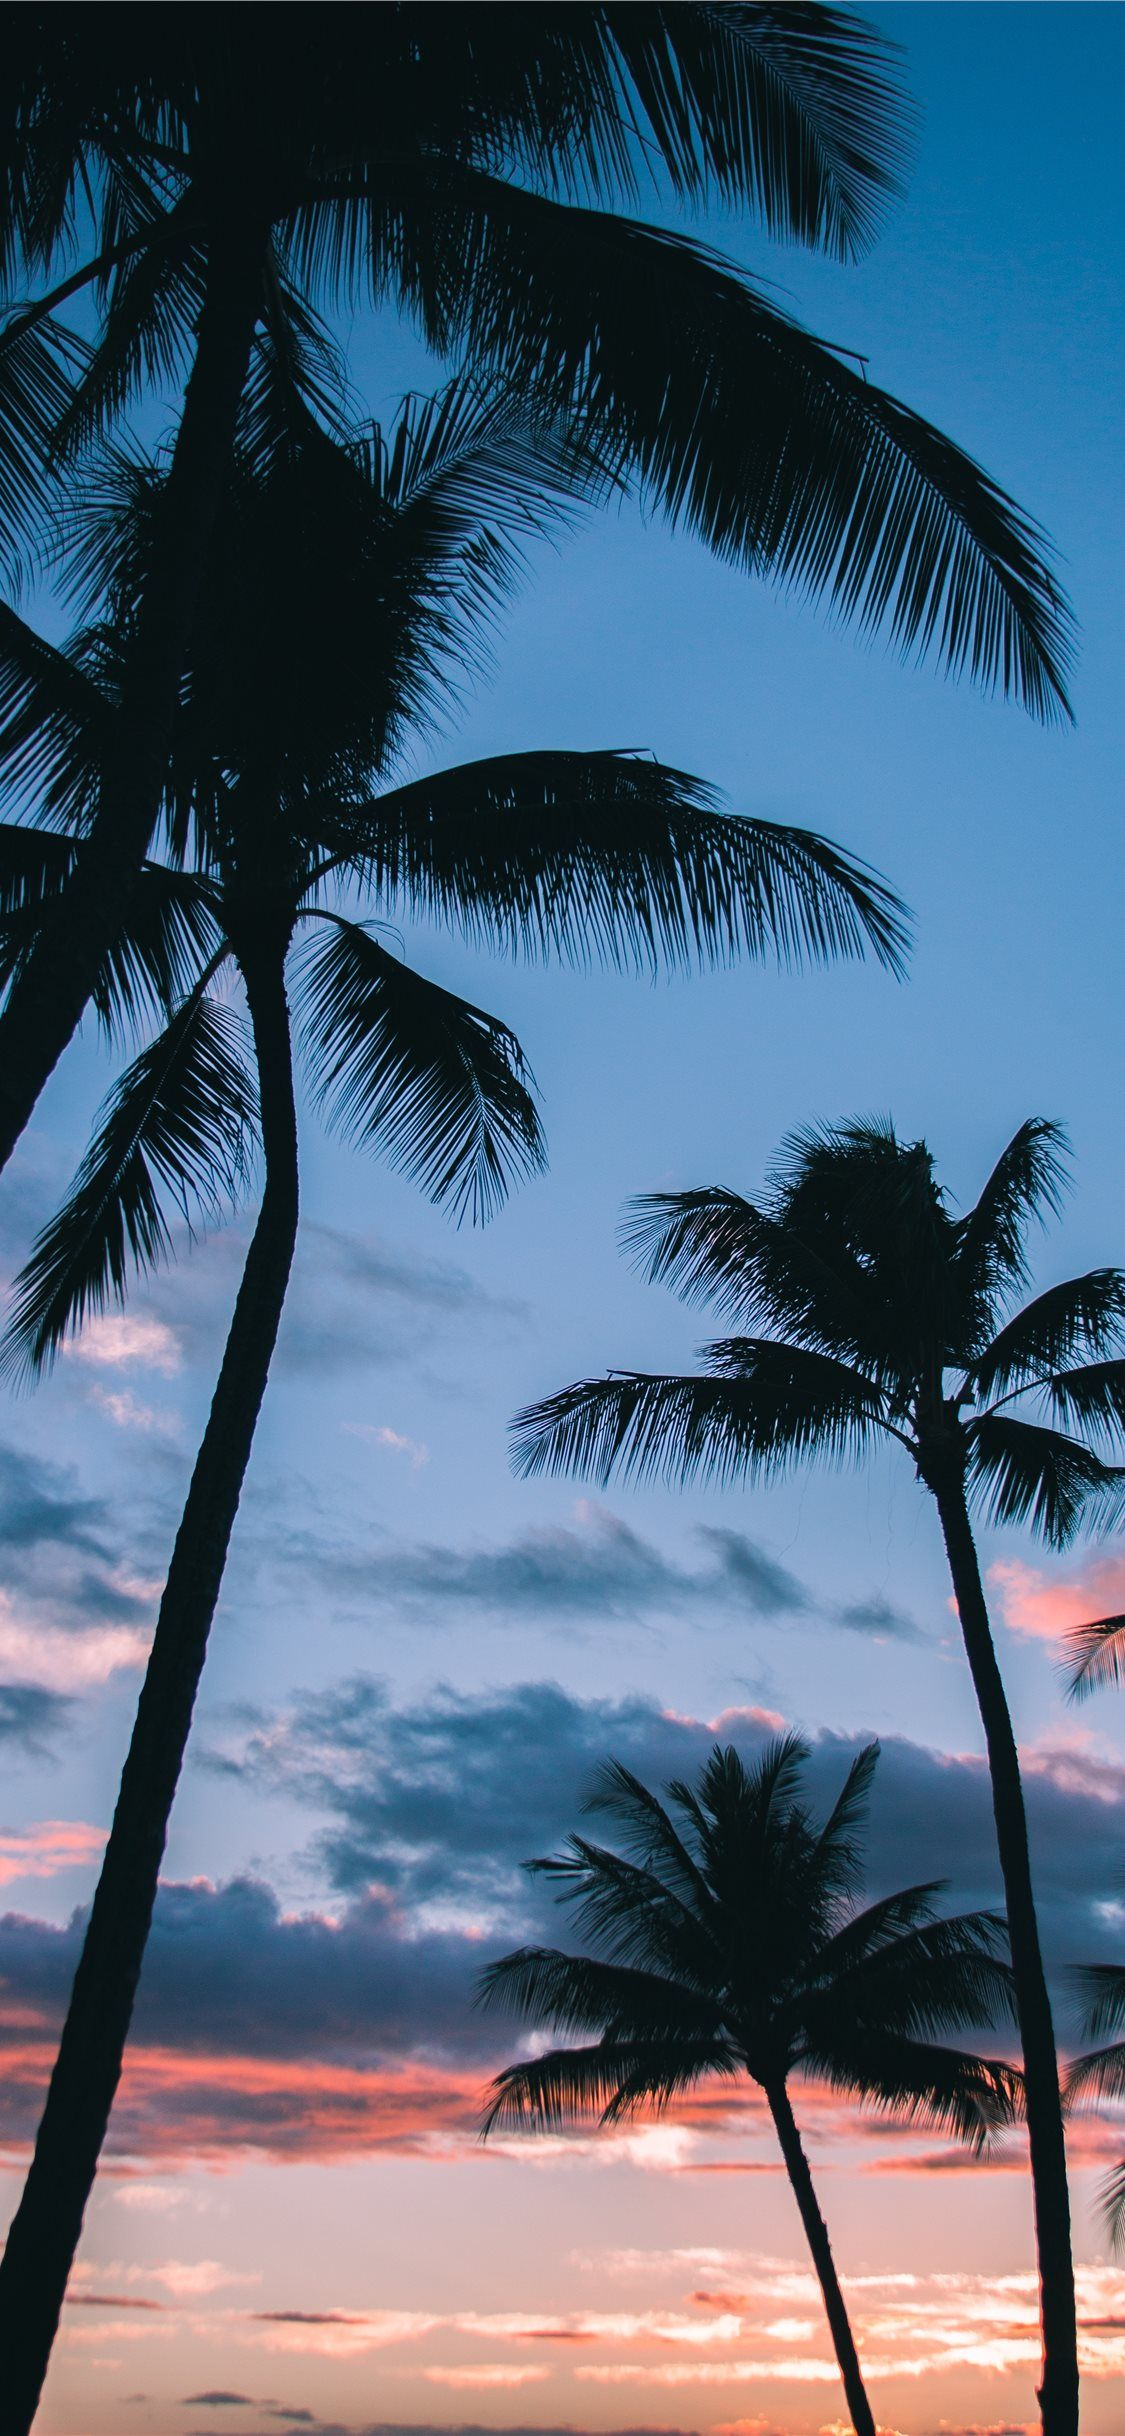 Beach Photography Sunset Palm Trees Digital Download